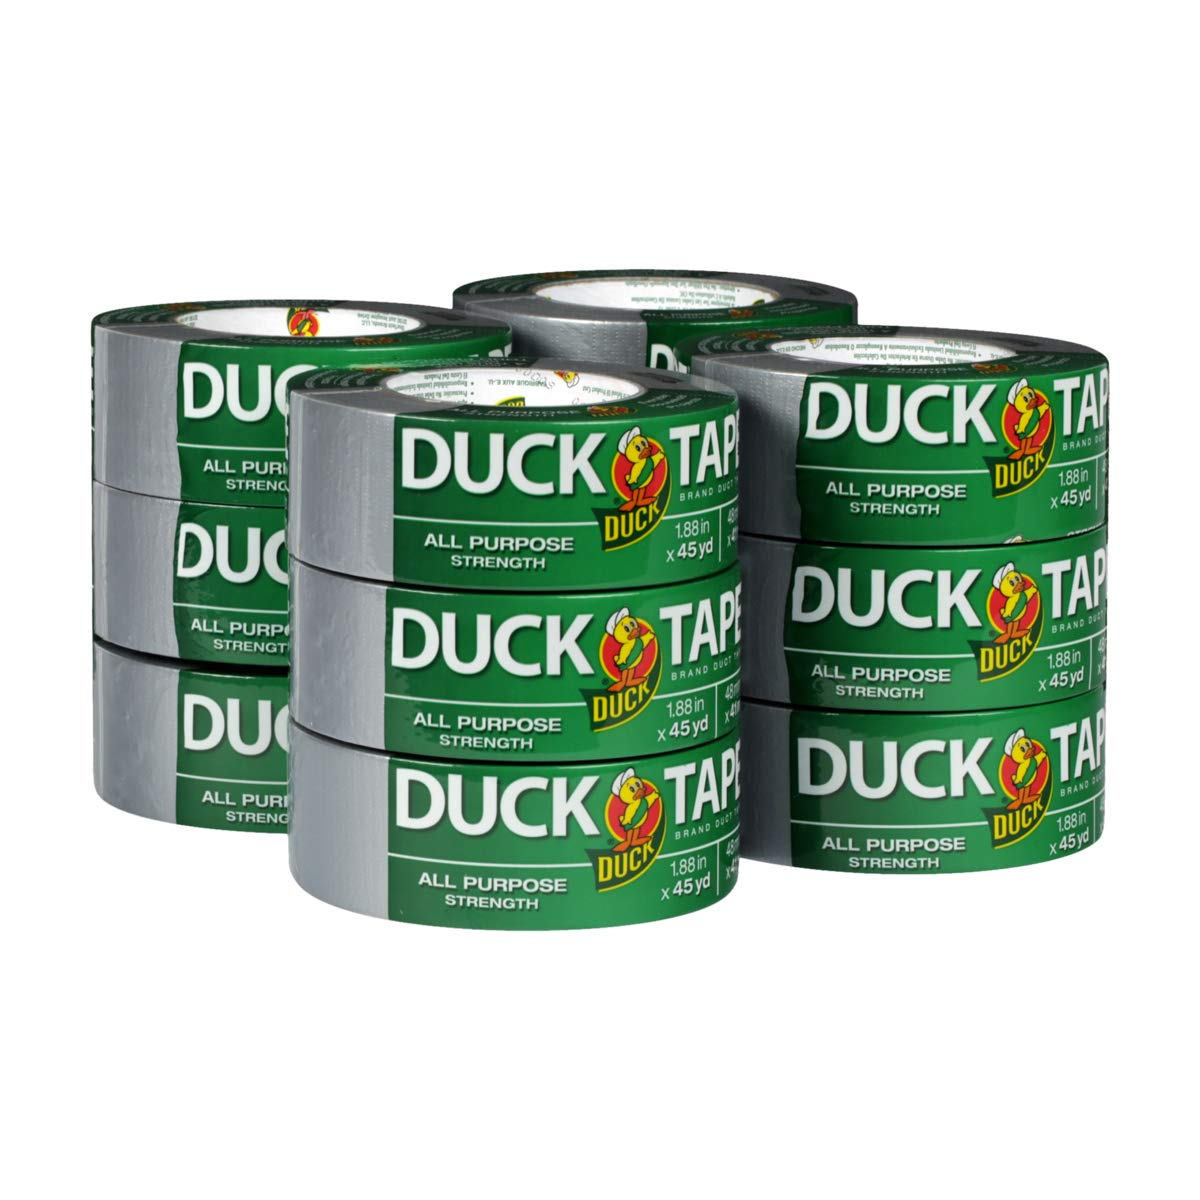 The Original Duck Tape Brand  284358 Duct Tape, 12-Pack 1.88 Inch x 45 Yard, 540 Total Yards Silver by Duck